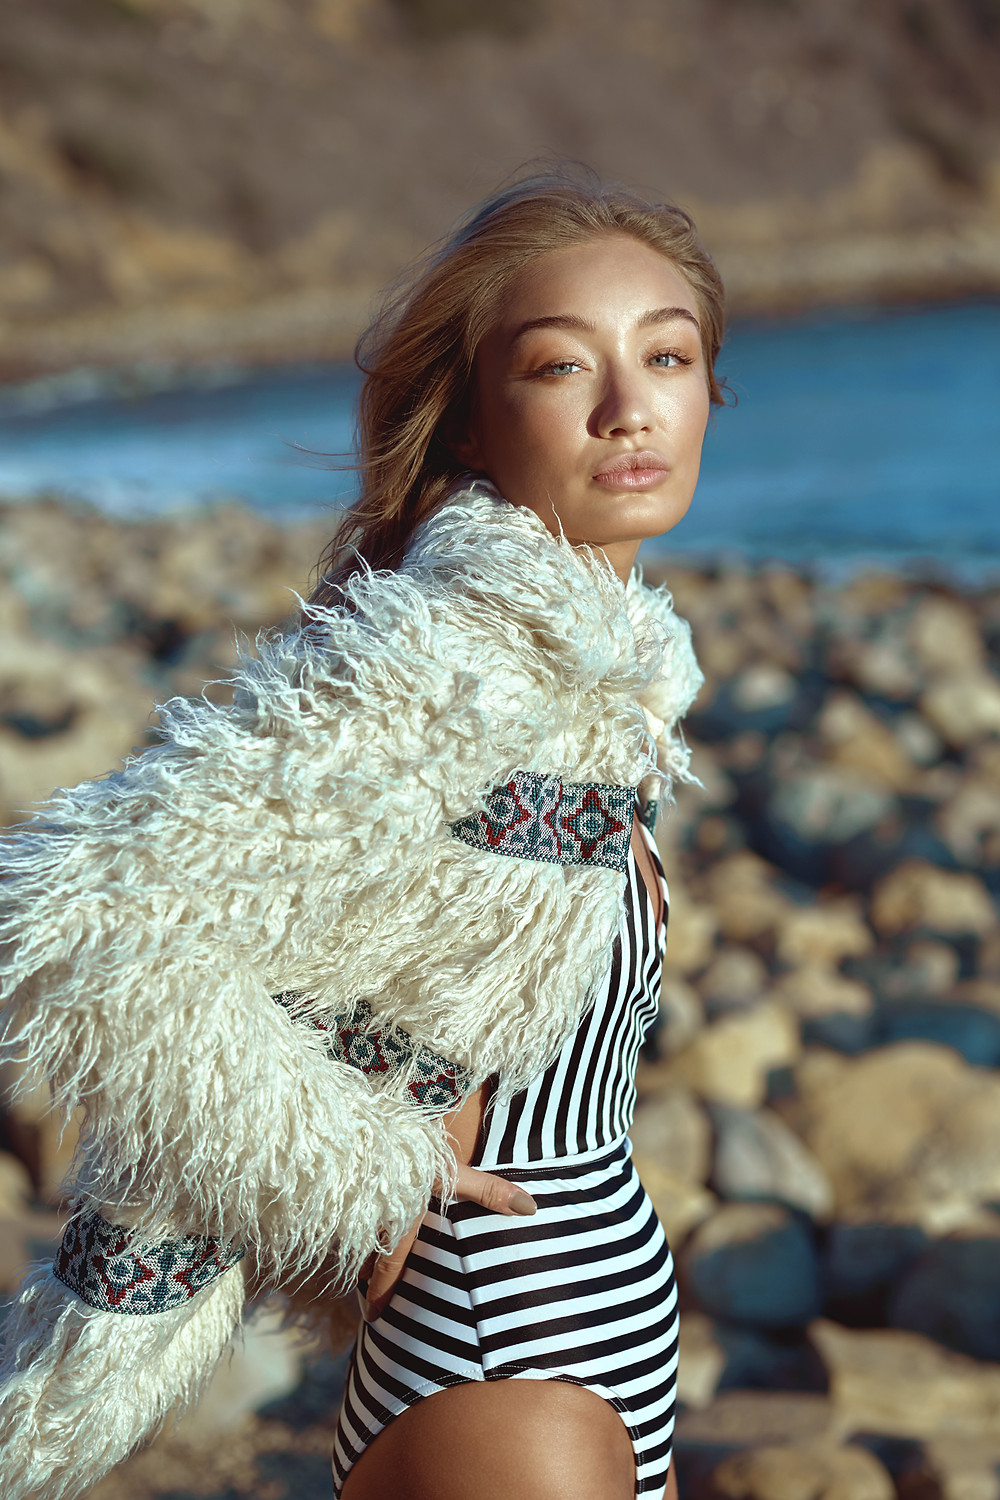 Bethan Sowerby of J'adore Models Rosa Faux Fur Coat from Urban Outfitters - photography by Patrick Patton